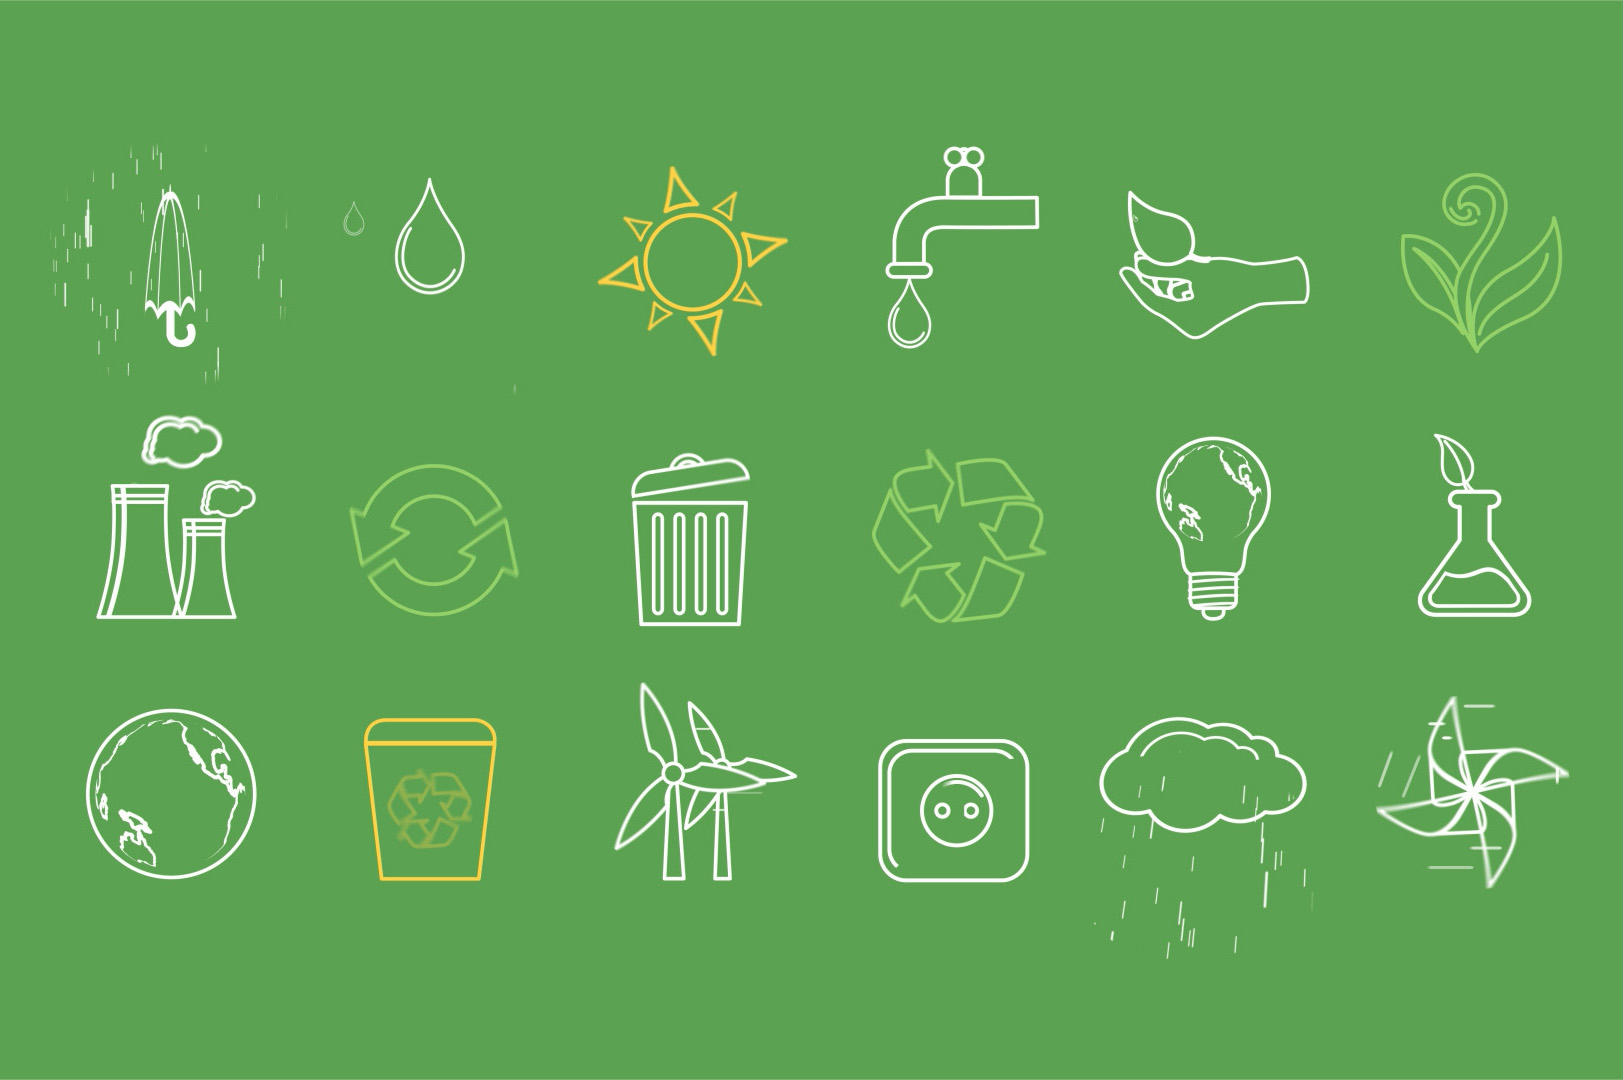 animated green and eco friendly icons ae template